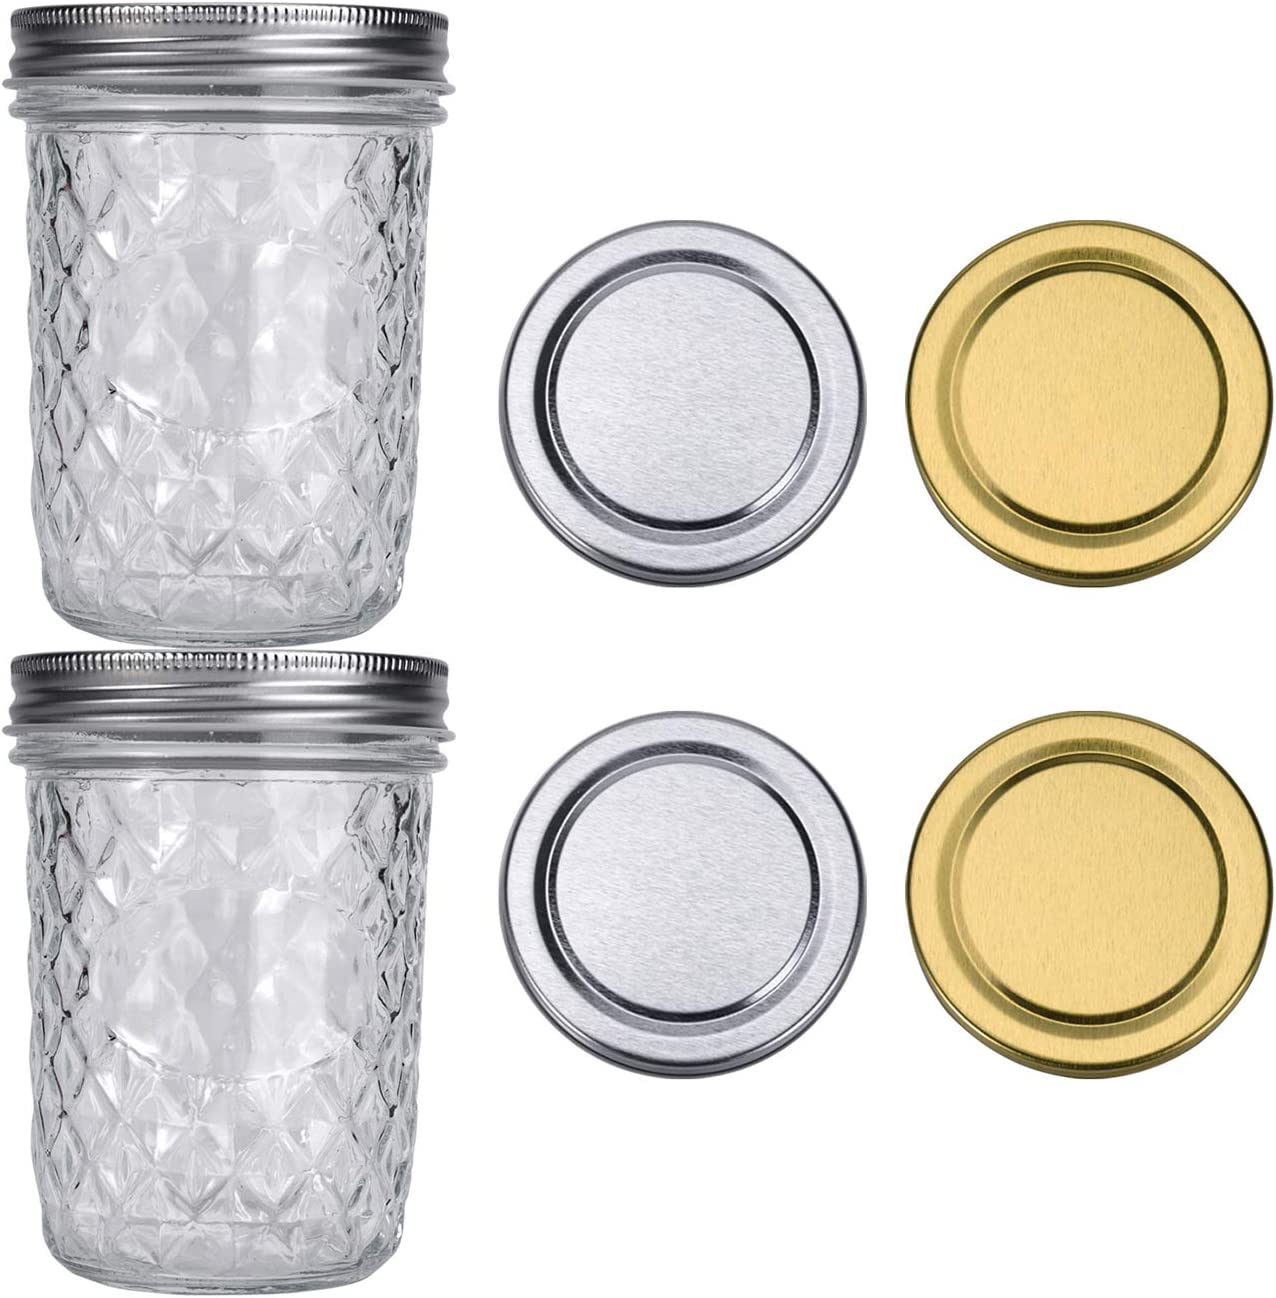 ShiJJ 16oz Mason Jars with Lids Wide Mouth Jars Jelly Jars 2 Pack with 2 Silver Lids + 2 Gold Lids Pint Mason Jar Ideal for Canning Food Storage